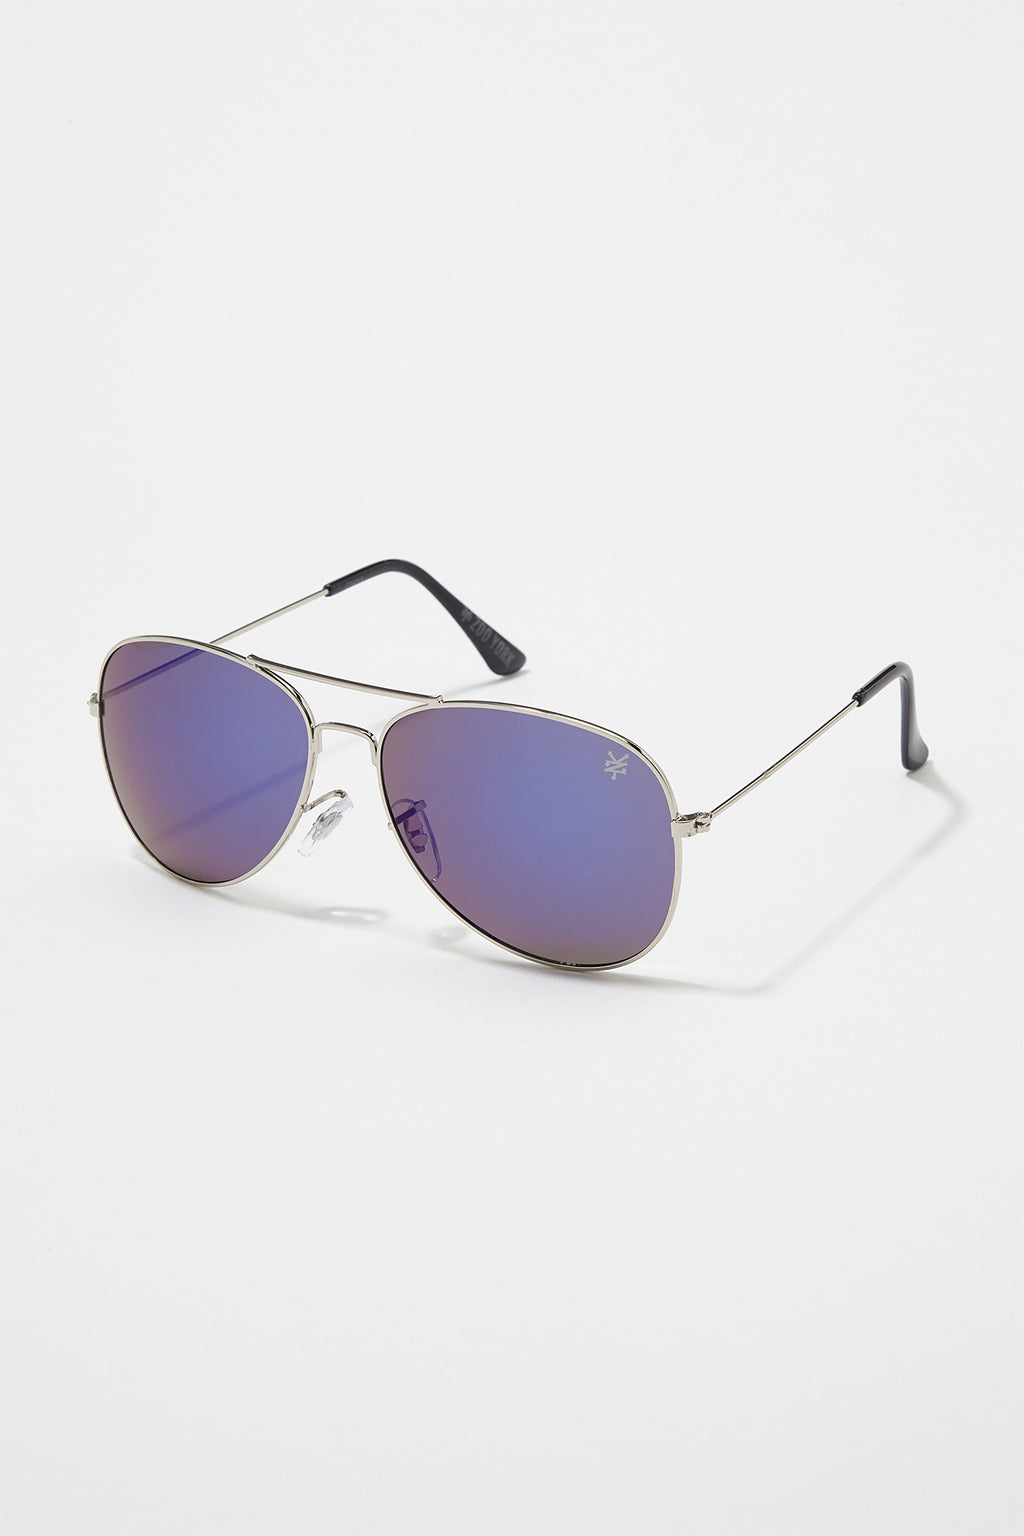 Zoo York Mens Revo Aviator Sunglasses